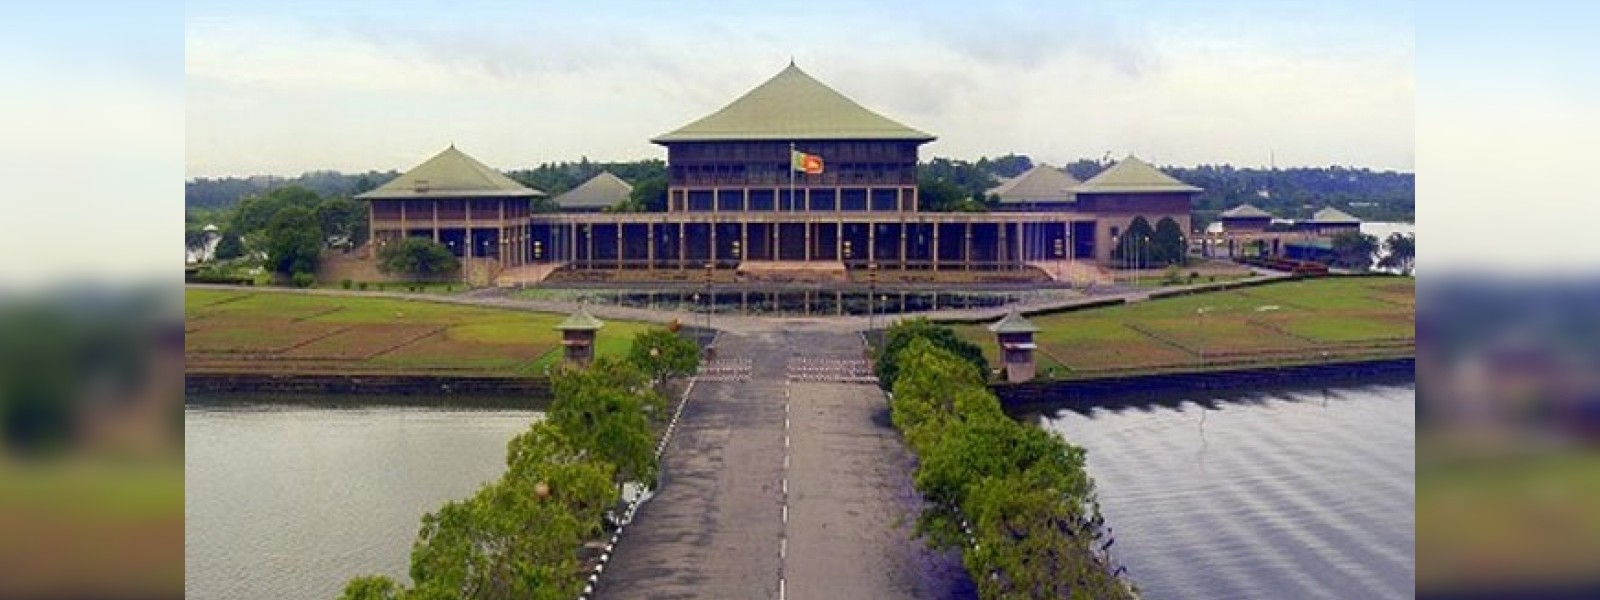 Committee on Parliamentary Affairs to convene on Monday (19)